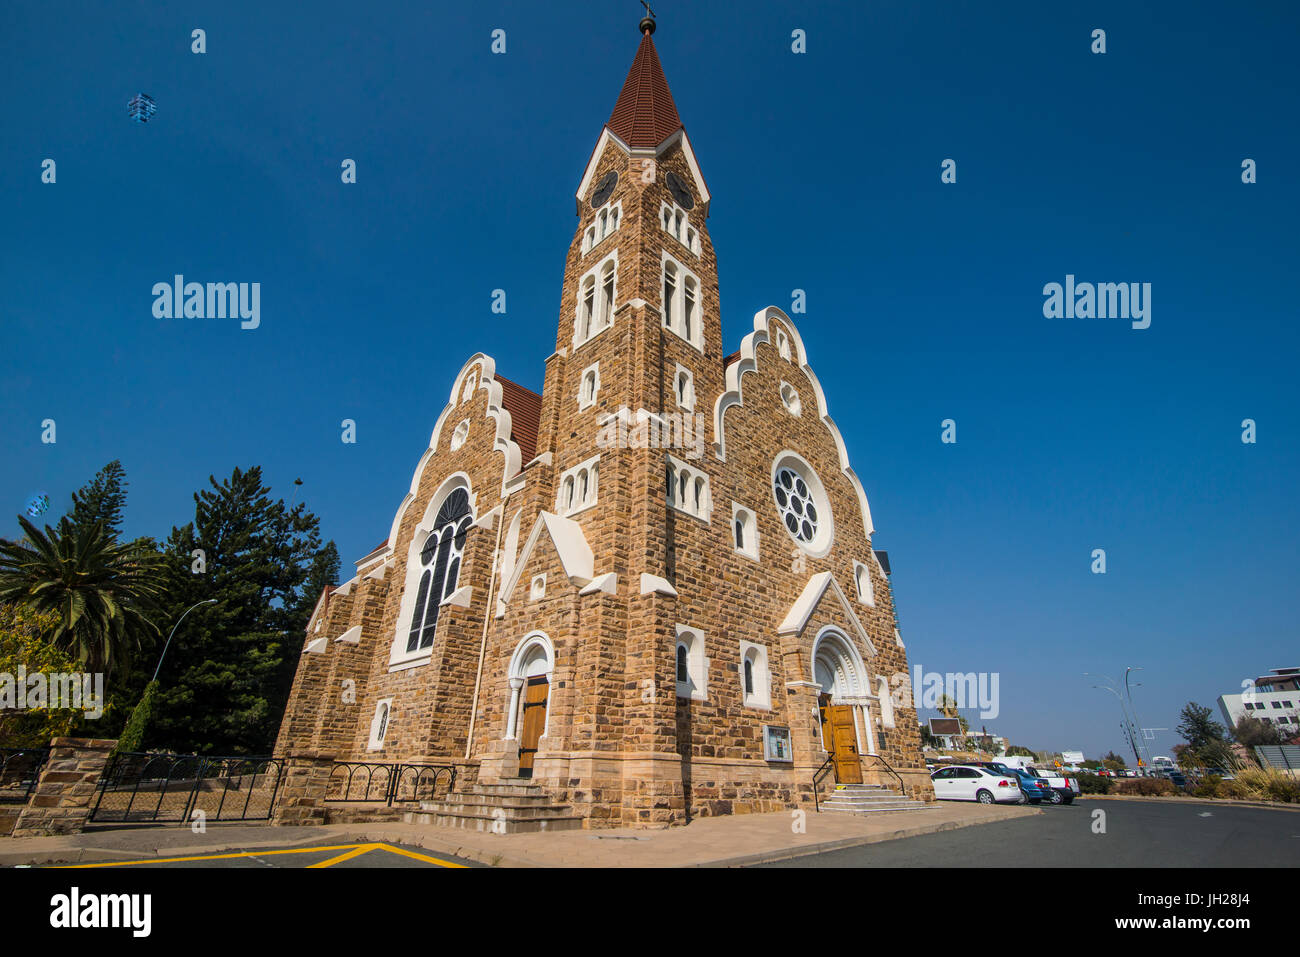 Lutheran Christ Church, Windhoek, Namibia, Africa - Stock Image